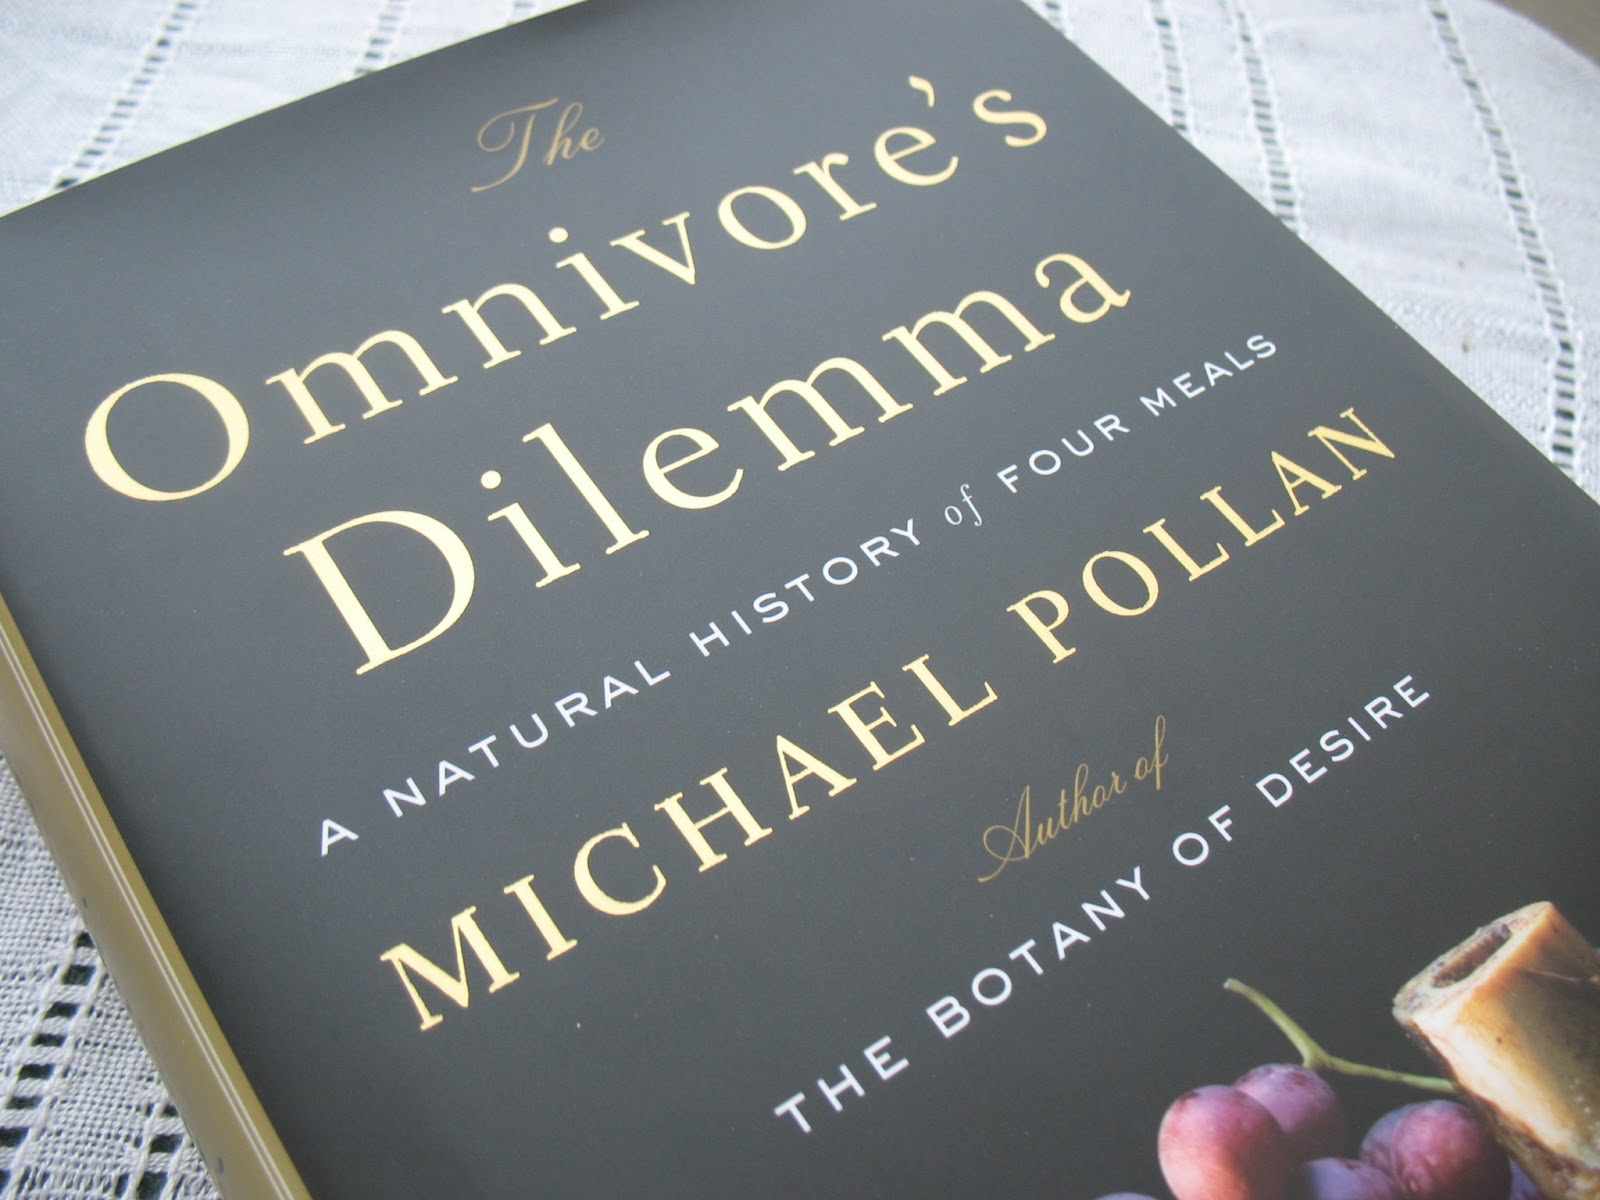 omnivore s dilemma The dilemma—what to have for dinner when you are a creature with an open-ended appetite—leads pollan (journalism/berkeley the botany of desire, 2001, etc) to a fascinating examination of the myriad connections along the principal food chains that lead from earth to dinner table.